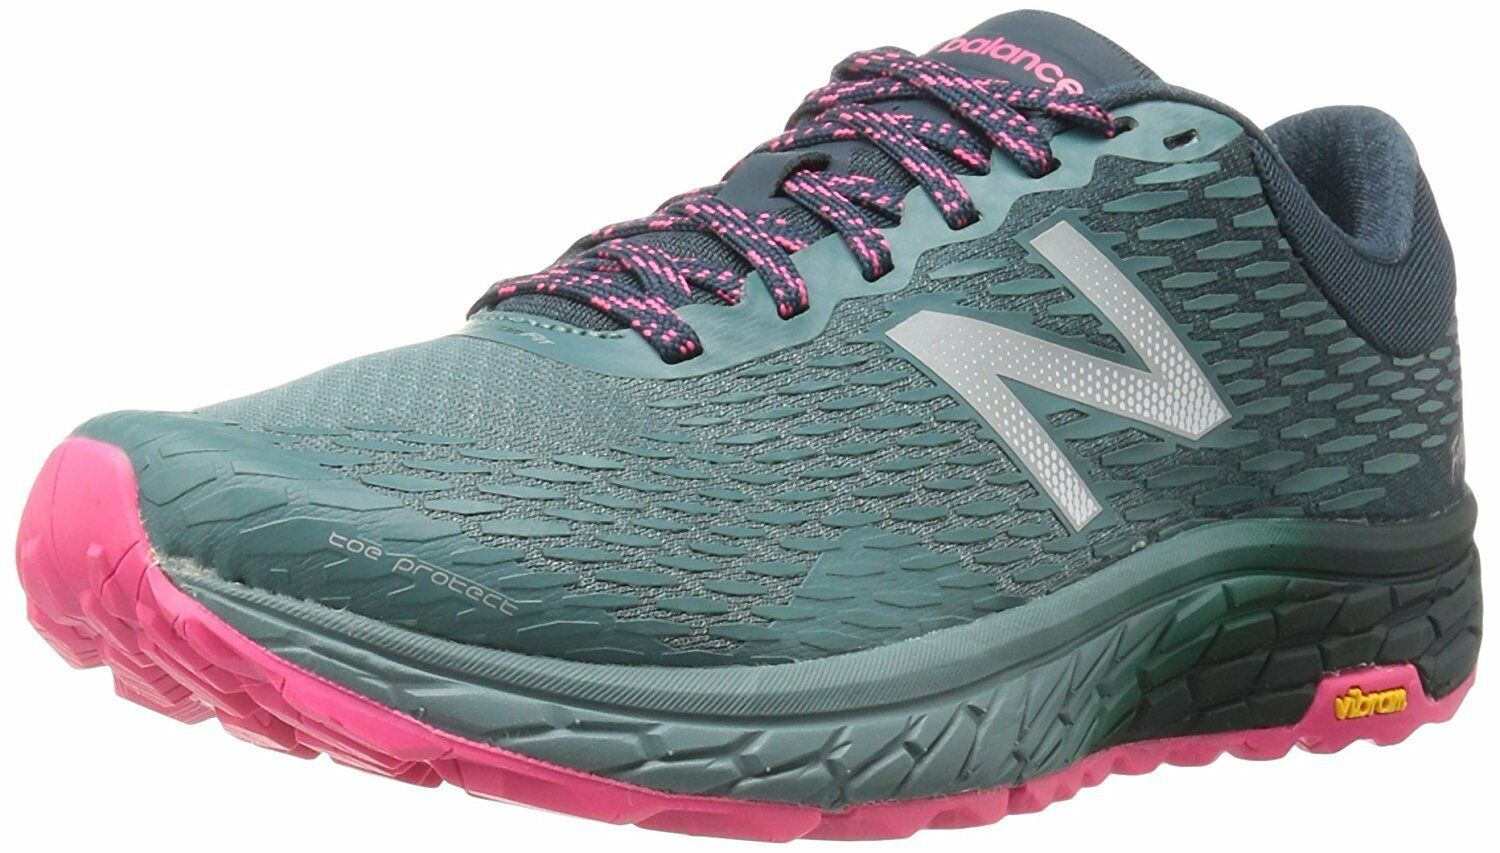 New Balance Women's Hiero V2 Trail Running Sneaker 6.5 B(M) US